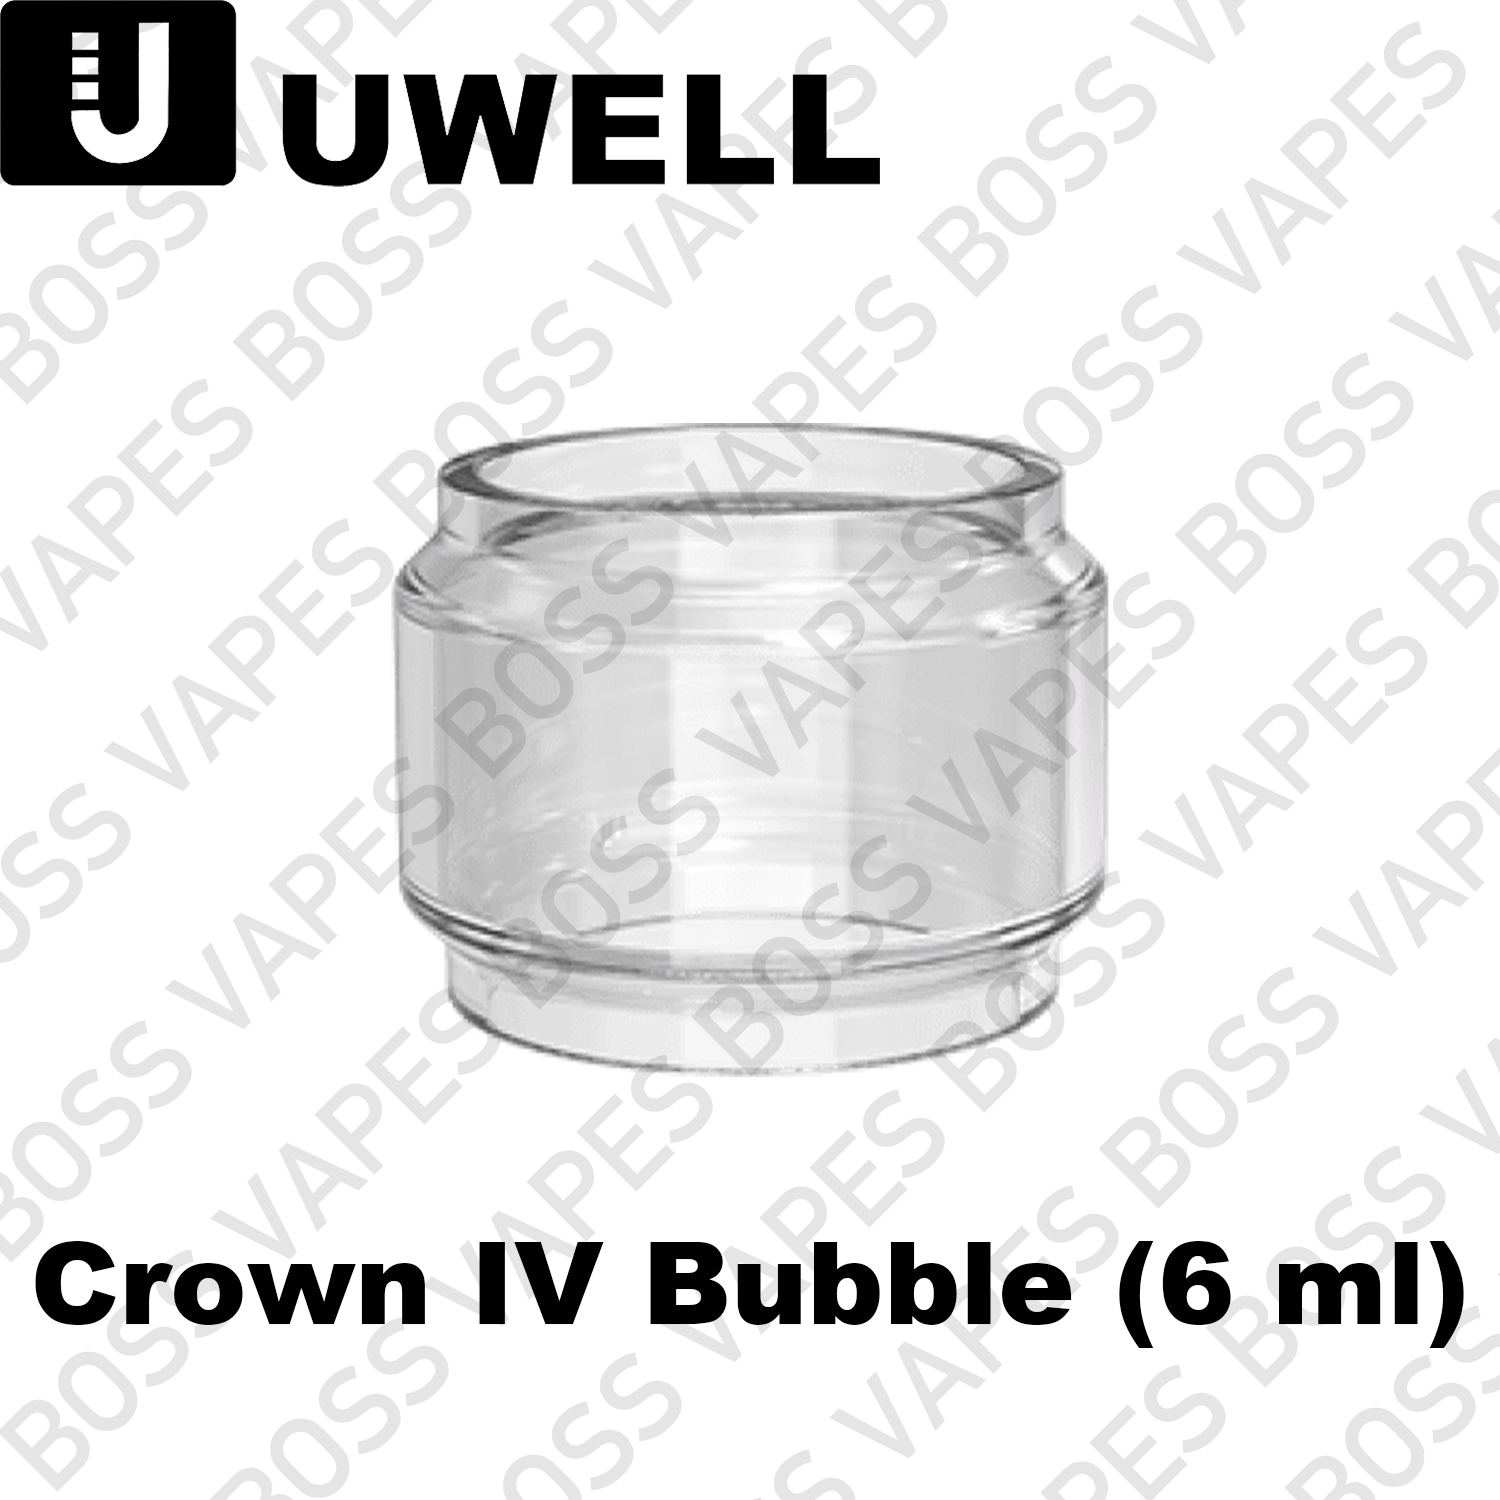 Uwell Replacement Glass